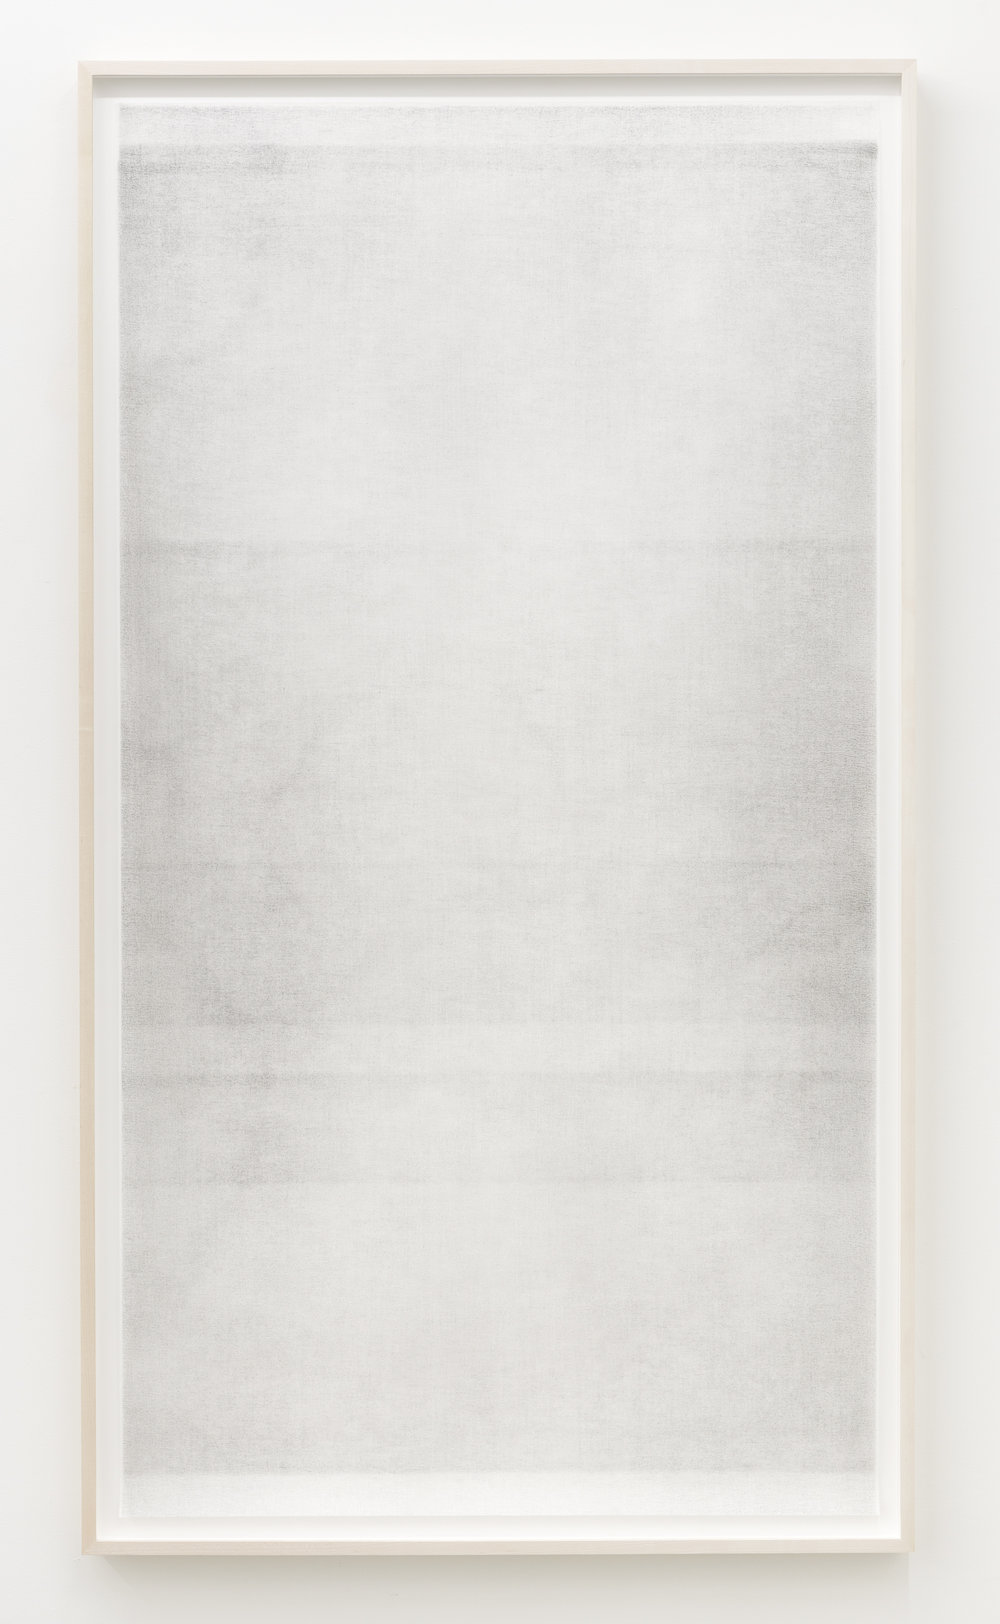 "Sans titre (when it settles #5 from the series A Certain Silence), 2017, huile, graphite et fusain sur tarlatan, 150 X 89 cm (59 X 35"")"